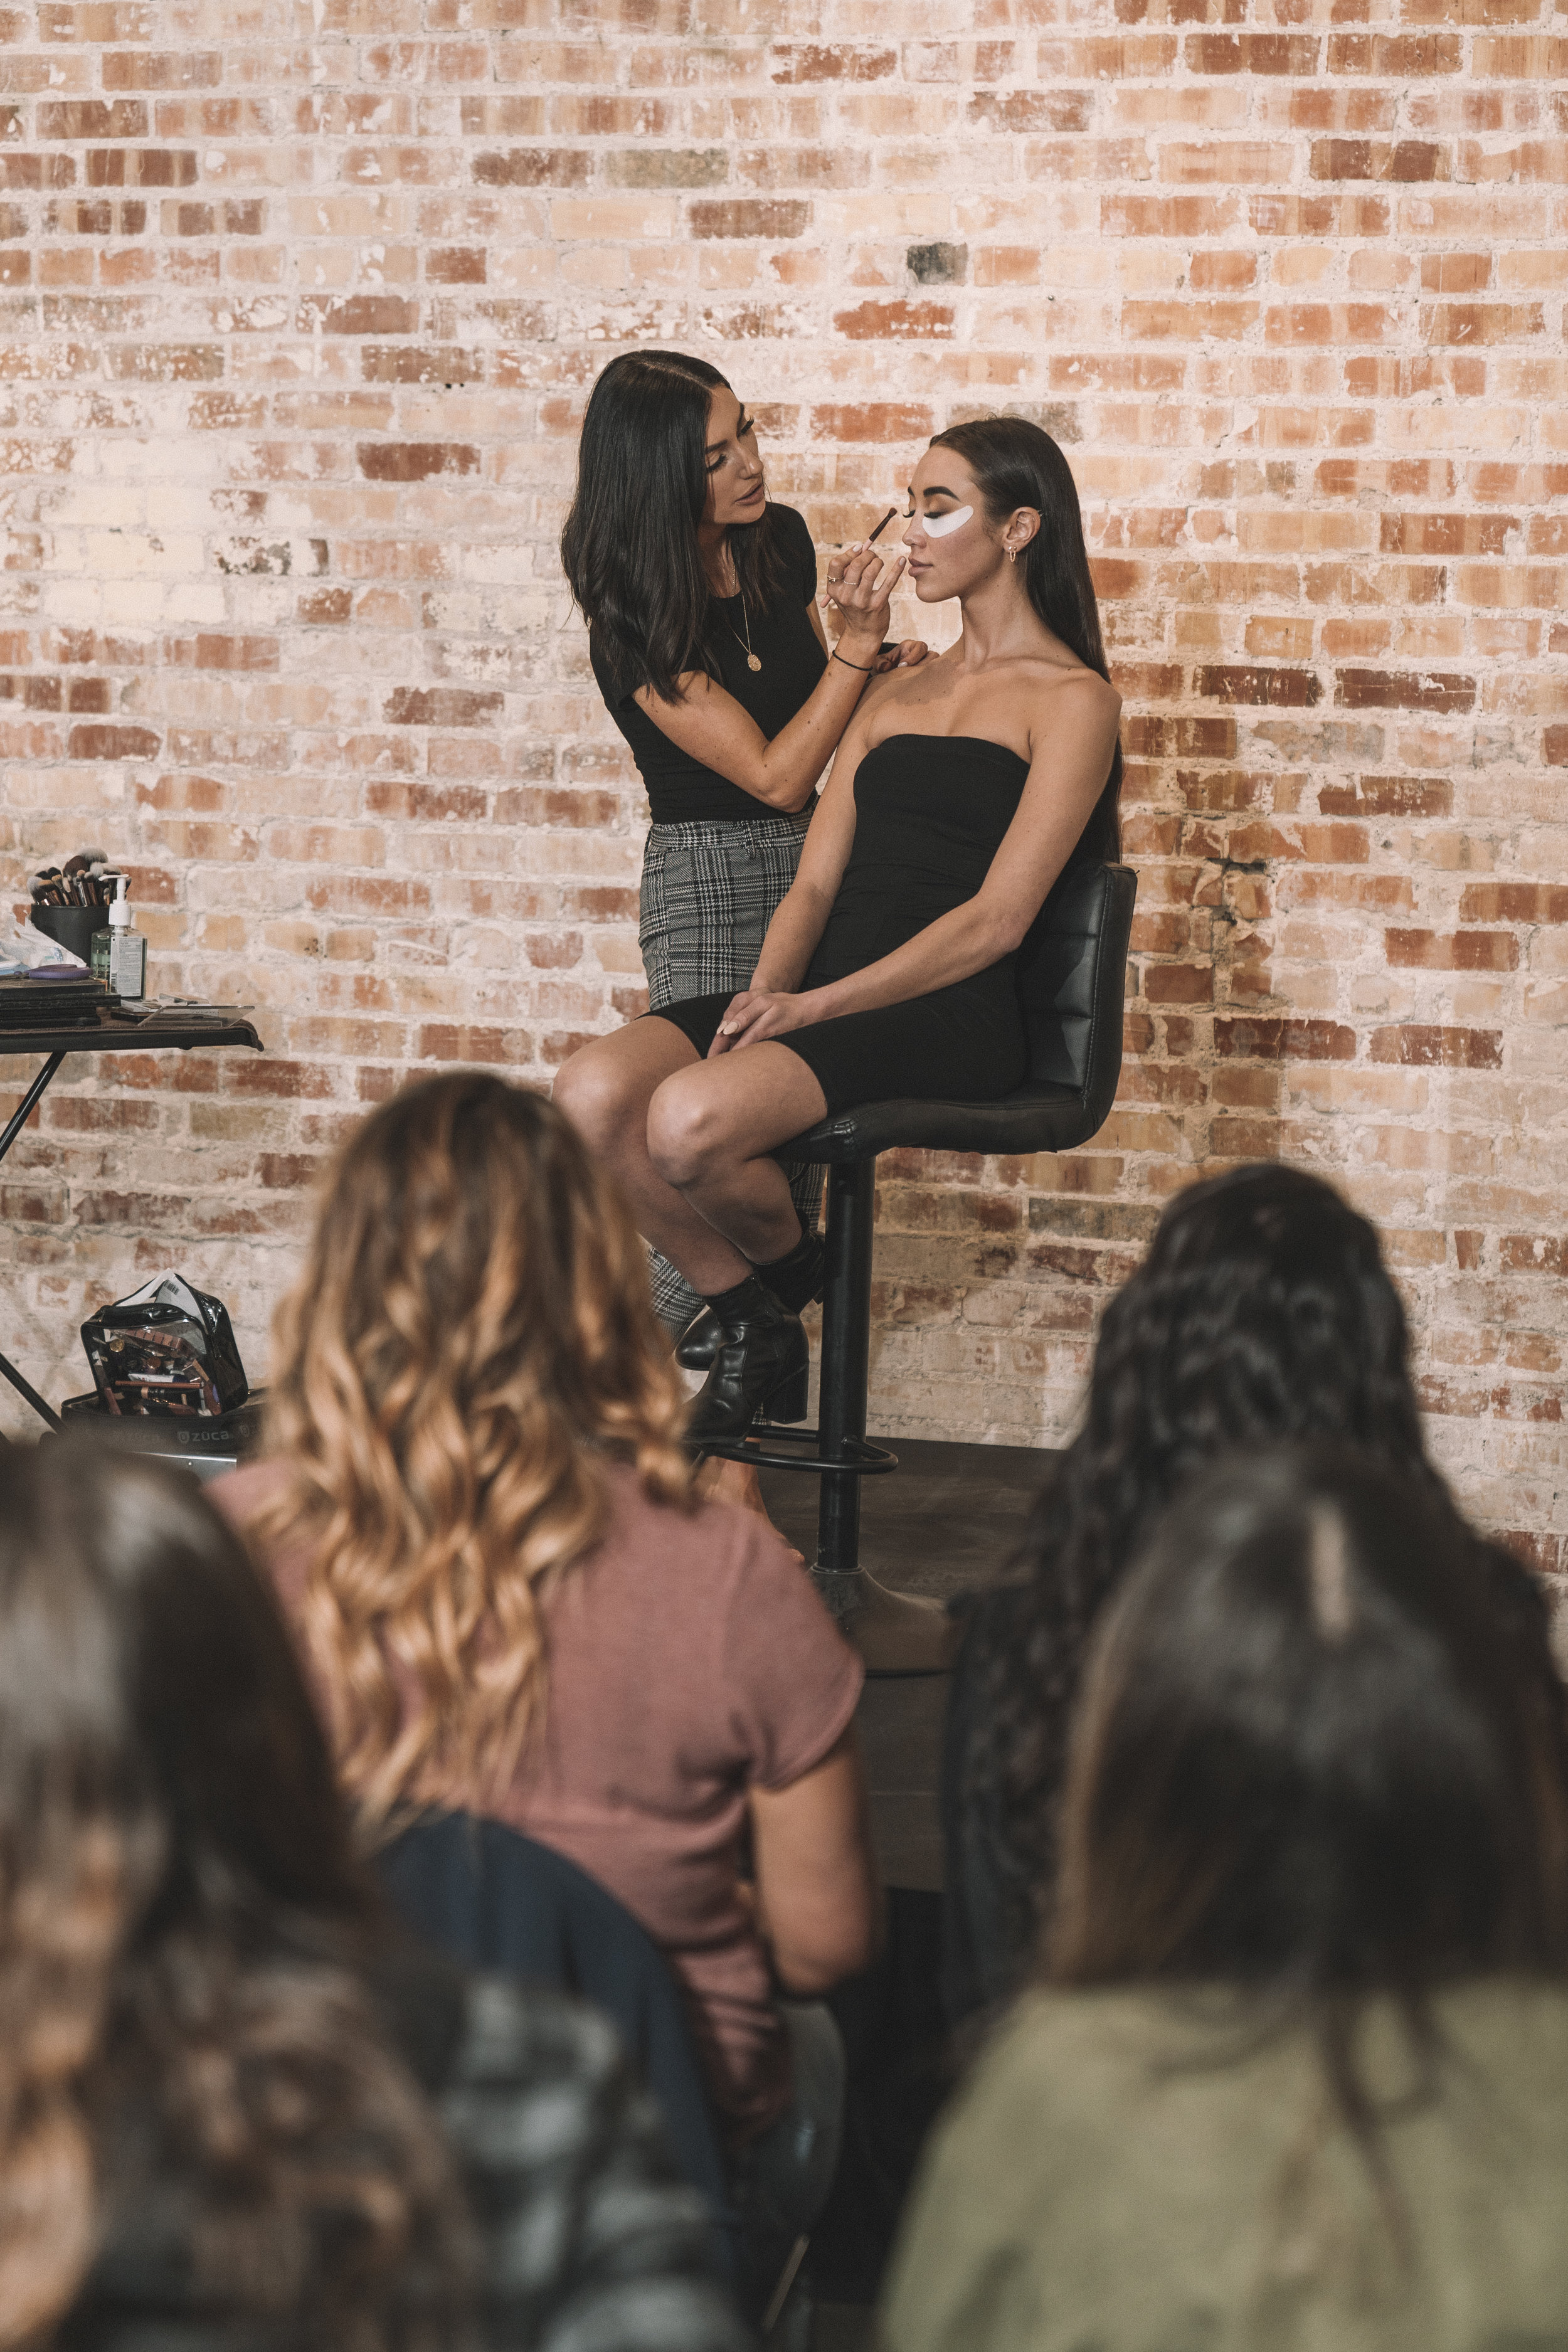 Boise Makeup Class - When: Wednesday, May 8th, 201912:00 pm - 4:00 pm MSTWhere: Coffee Paint Repeat139 East Idaho Ave, Meridian, ID 83642Price: $150About:This class is for working makeup artists, aspiring artists, makeup enthusiasts and anyone who has a passion for makeup and wants to learn new techniques. This is a 4 hour class in which Morgan will perform an in depth demonstration of one of her signature looks as well as a Q & A session. Because Morgan wants this class to be beneficial to all skill levels, she will be going over the basics as well as advanced techniques. She is excited and passionate to share her knowledge and experience in this class and can't wait to help you excel in your makeup career.Topics that will be covered:How to perfectly blend eyeshadow in a flattering way for every eye shape. The brushes, tools and techniques you need to achieve seamless blending.How to apply false lashes and have them blend into natural lashes. The products and tools that will make it an easy application.How to shape and fill in eyebrows to suit the client's face using both brow pencils and powder. You will learn how to set them properly to last all day.How to affectively prep the skin for makeup. You will learn techniques for oily, dry, combination and normal skin types.How to achieve a flawless full coverage base. Morgan will demonstrate her techniques on layering product to get a beautiful airbrush-like finish without looking cakey or heavy.How to sculpt and define the face with contour, bronzer, highlight and blush. How to know how much to apply to give the skin a healthy and luminous color and glow. You will learn with both cream and powder products.How to line and apply lipstick.How to set the face properly for all day wear.More topics will be covered these are just the main points. Morgan will be teaching a signature look all the way from start to finish.This class was designed with makeup artists in mind but that does not mean you have to be one to attend! Anyone that has a love for makeup and learning is welcome.